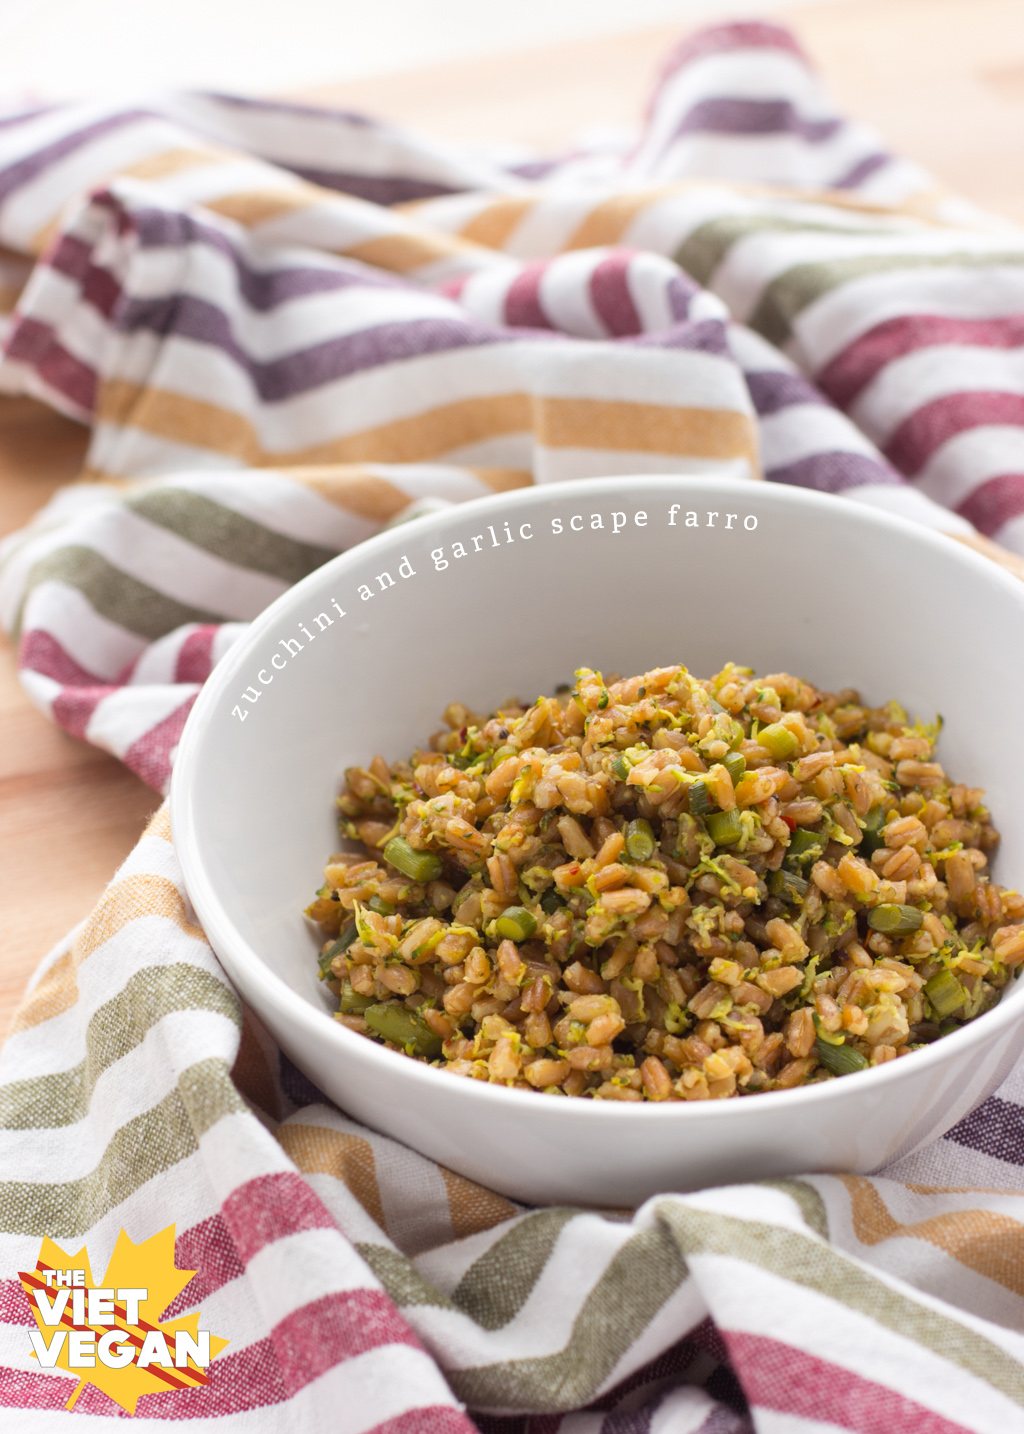 Zucchini and Garlic Scape Farro | The Viet Vegan | A simple lunch recipe and a post about disordered eating